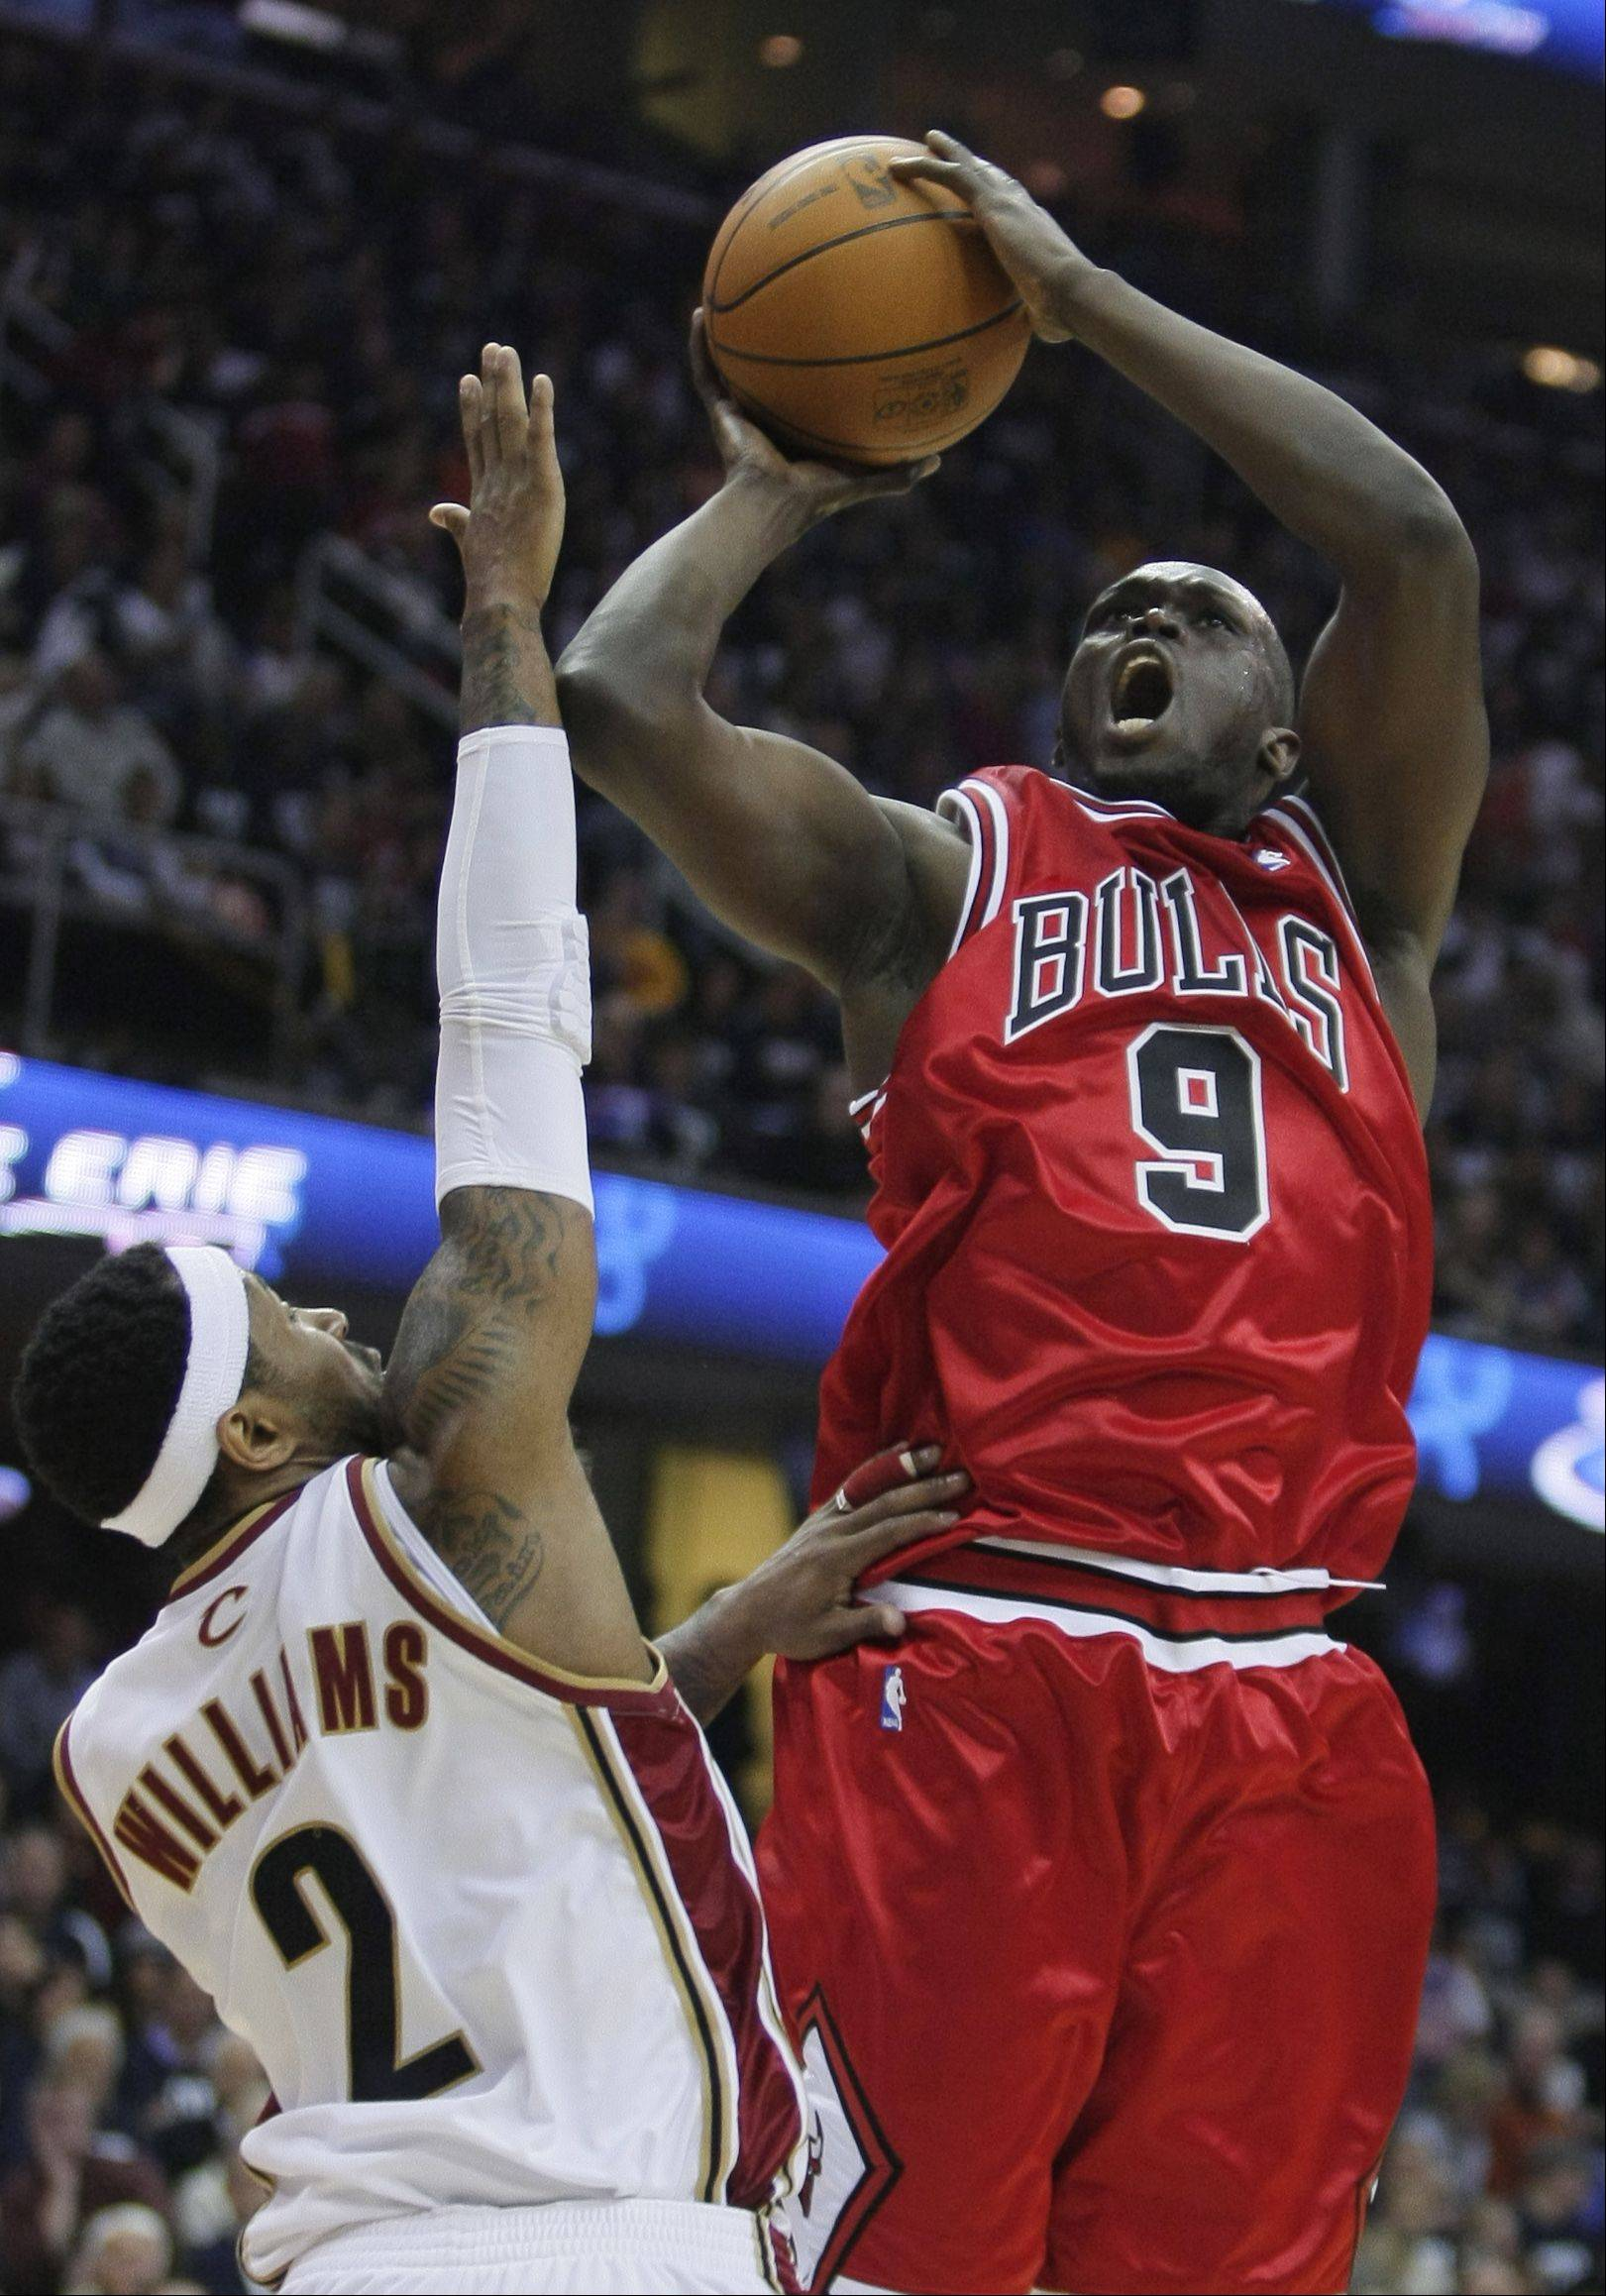 The Bulls' Luol Deng has struggled from 3-point range this season, going 1-for-12 from long range.